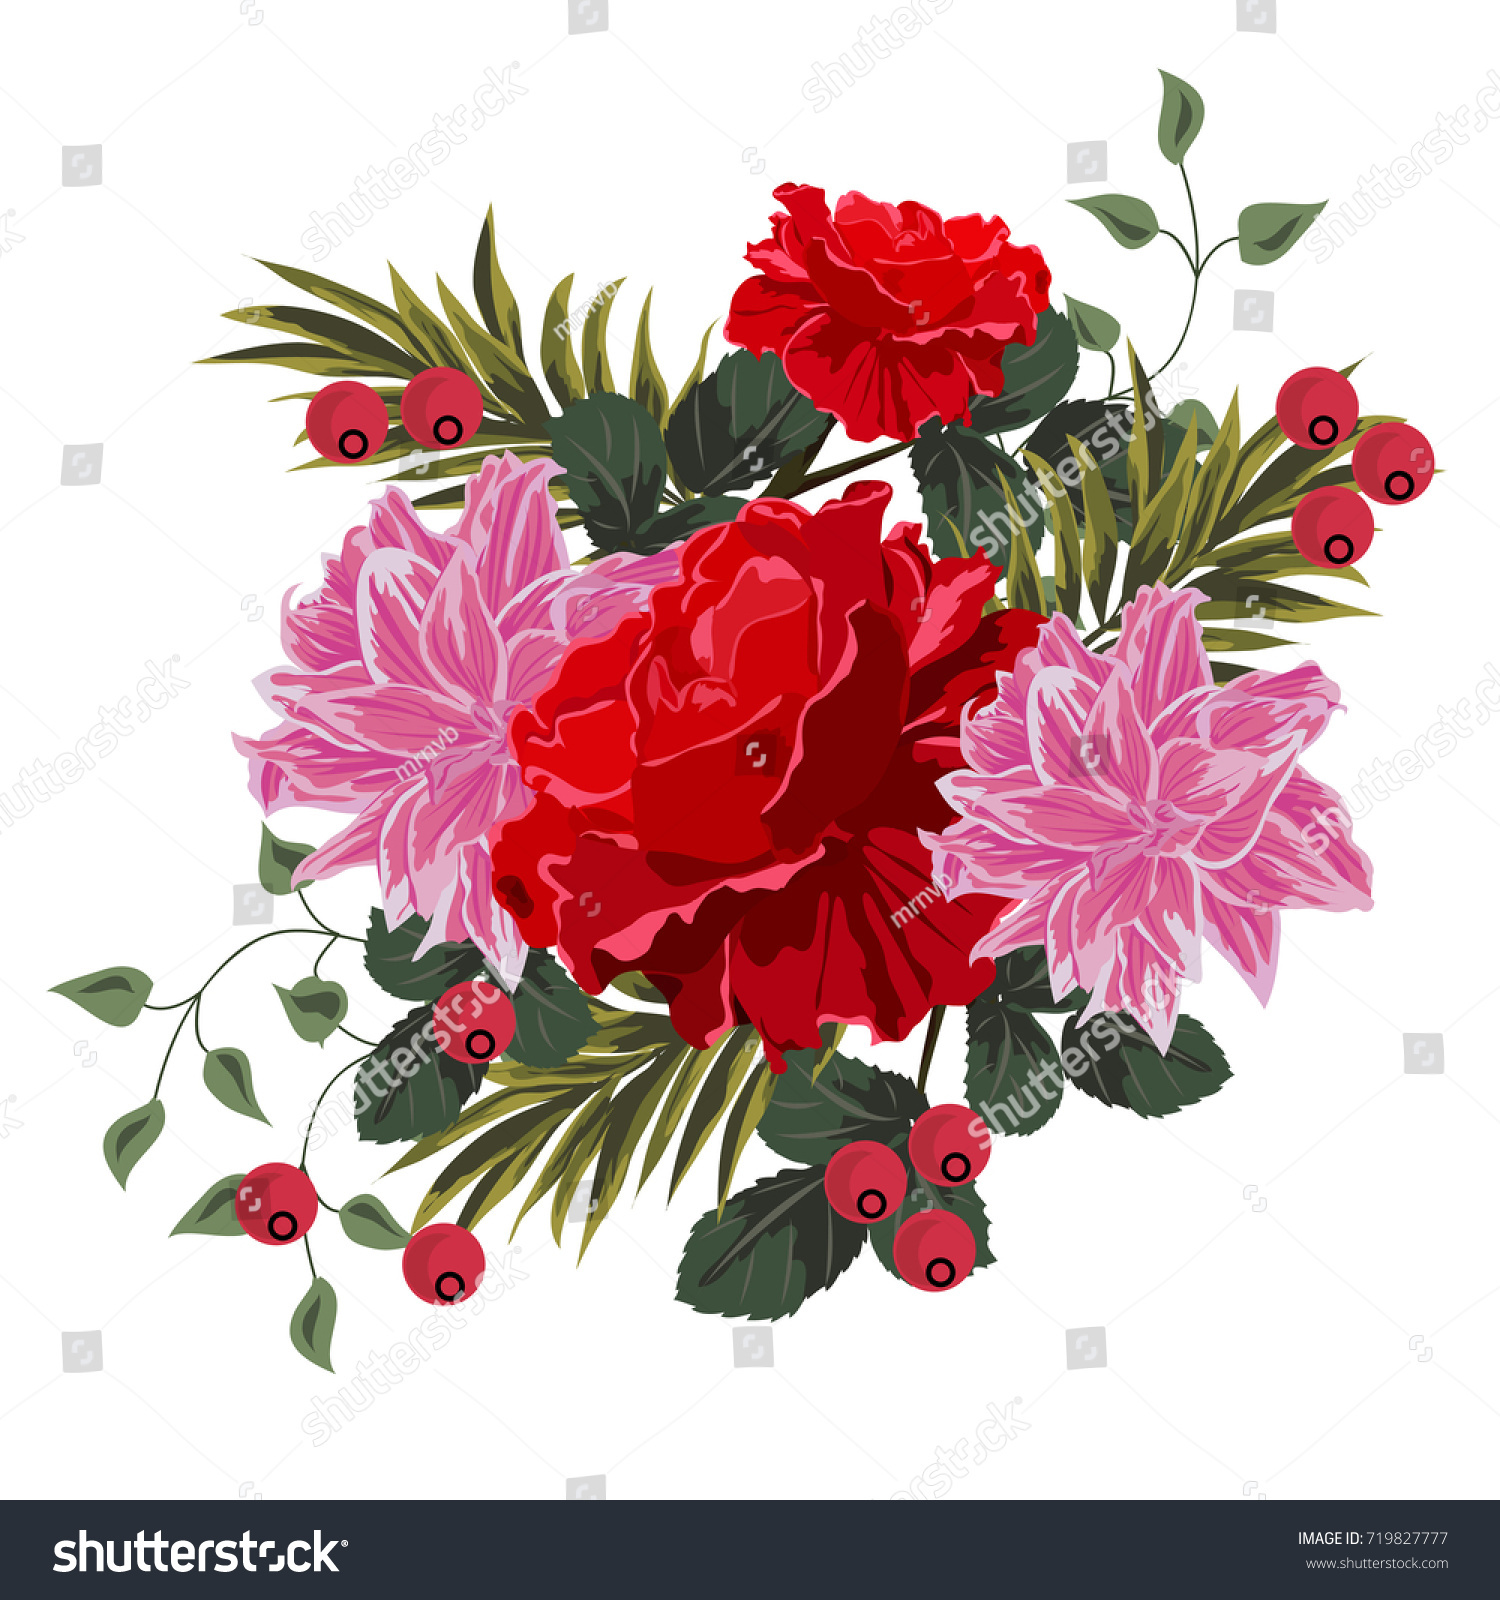 Bouquet Red Roses Lilies Berries Decor Stock Vector (Royalty Free ...